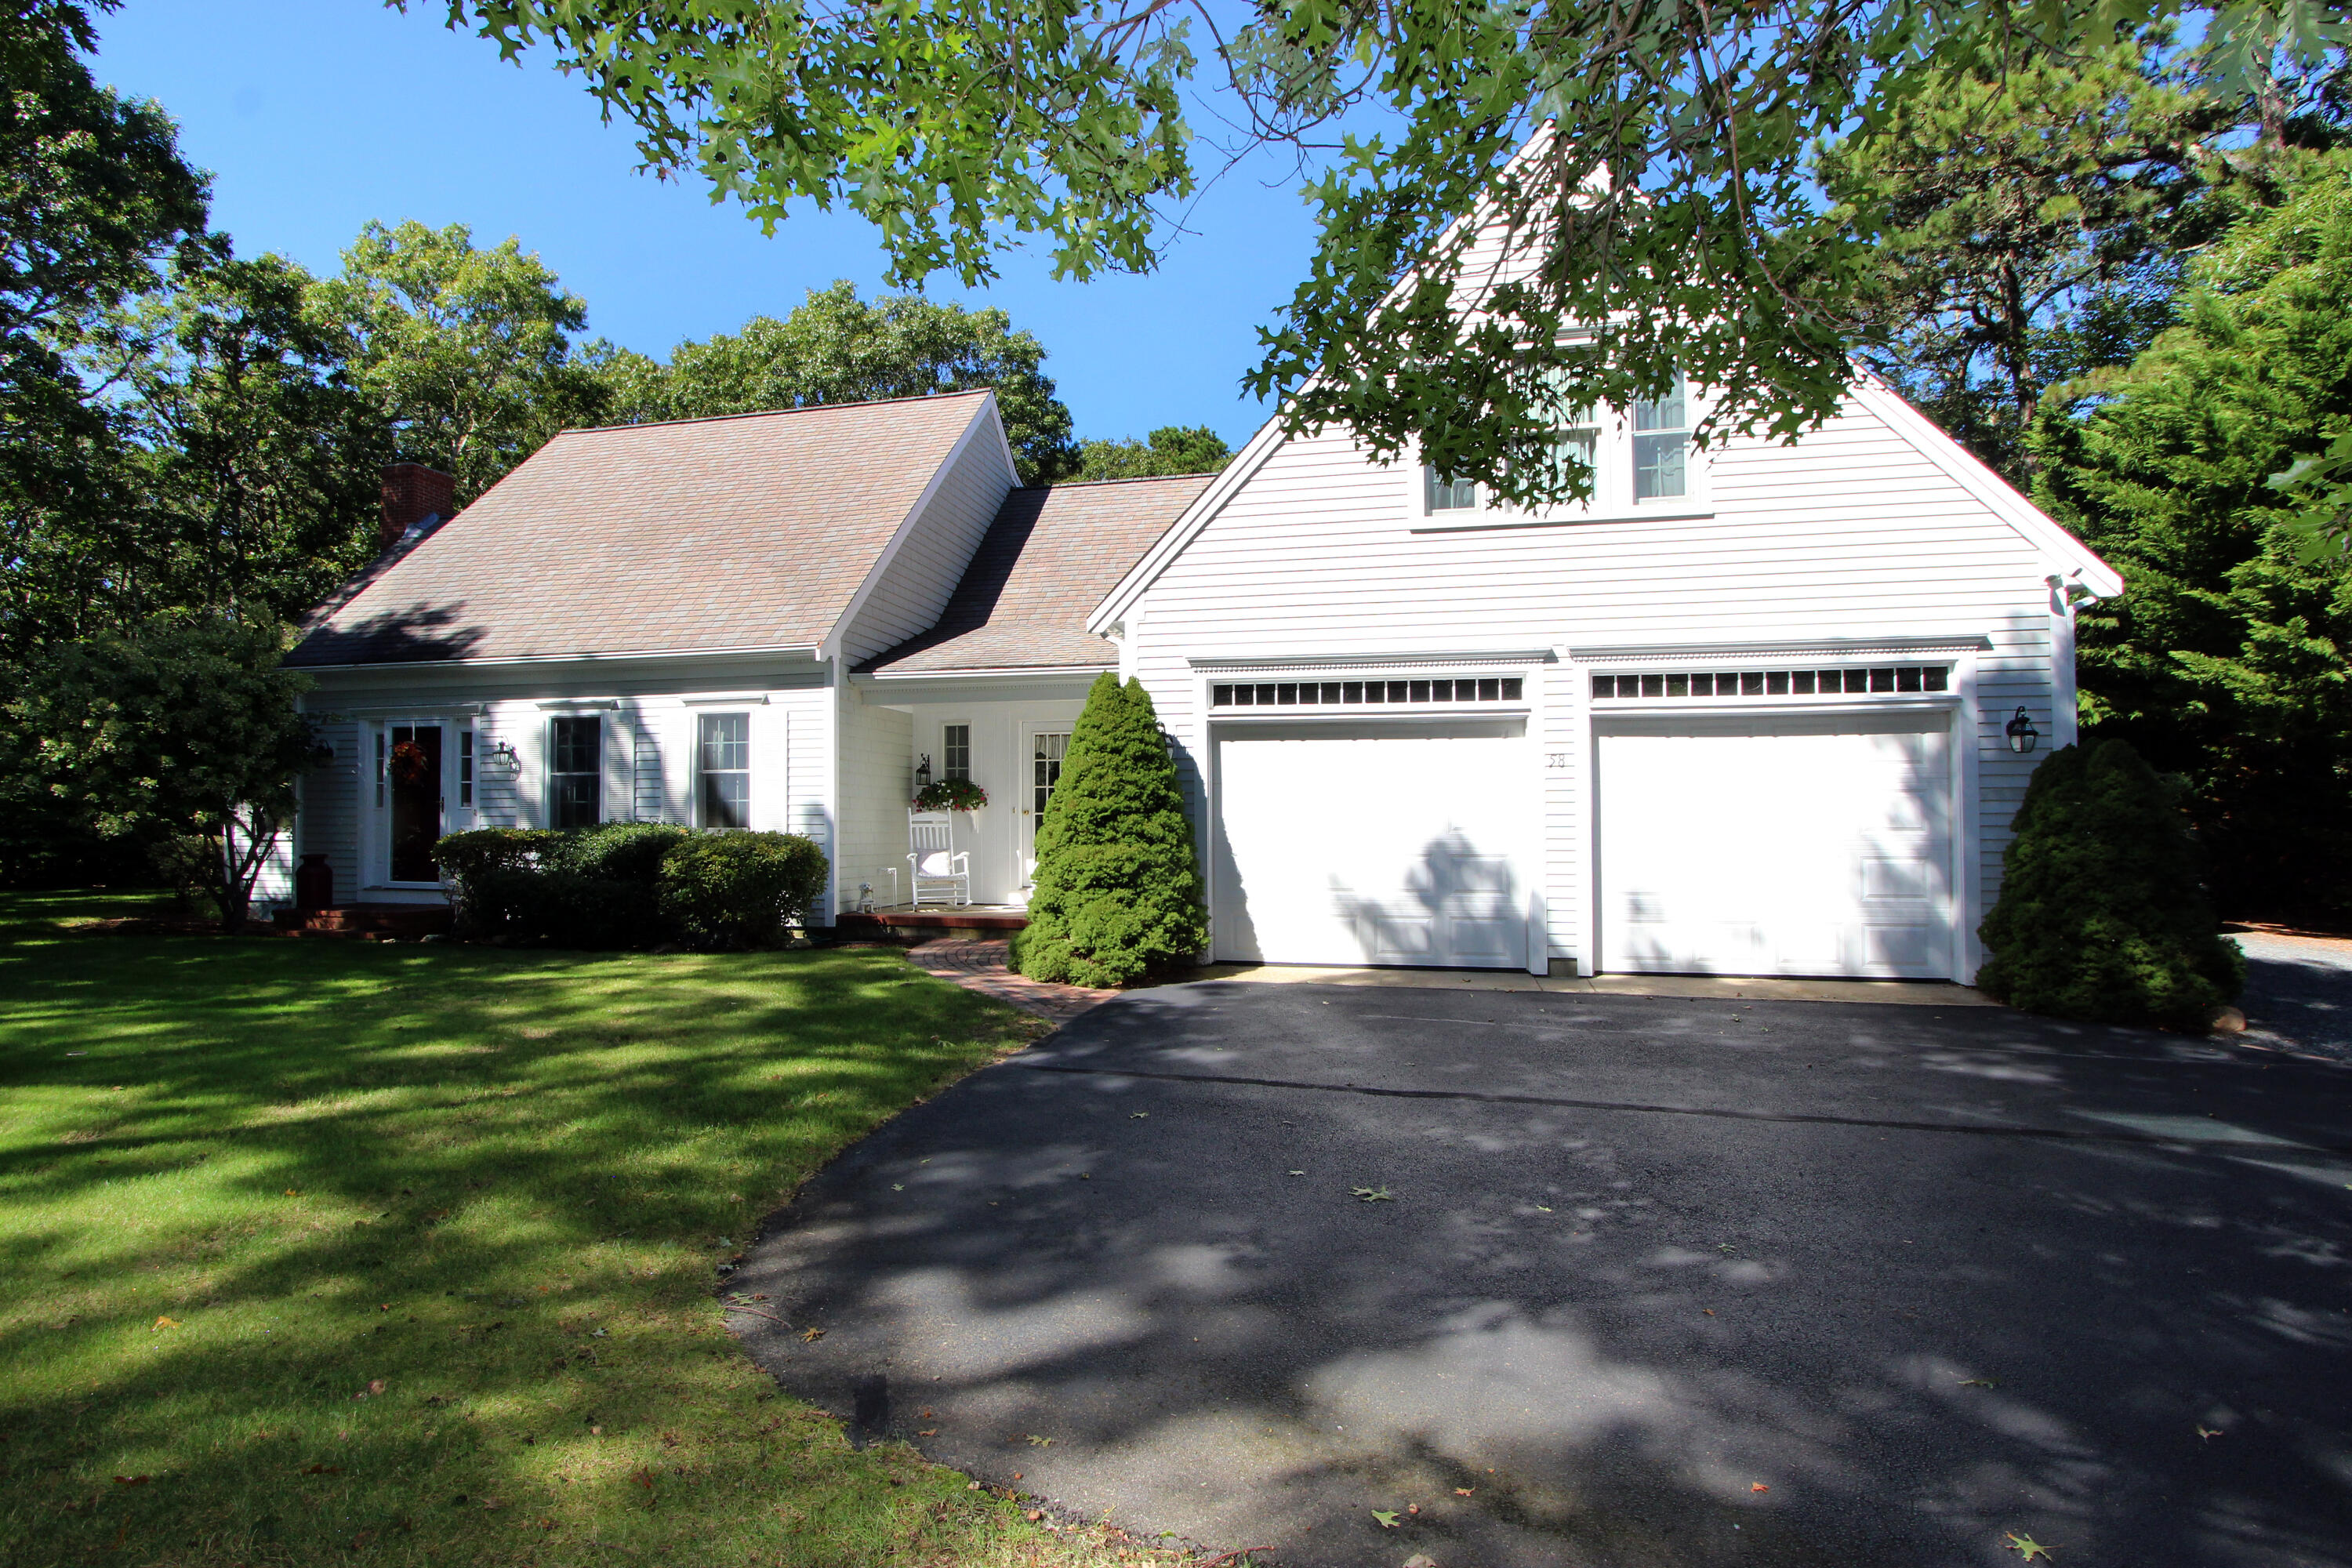 click to view more details 58 L P Albert Road, Brewster, MA 02631